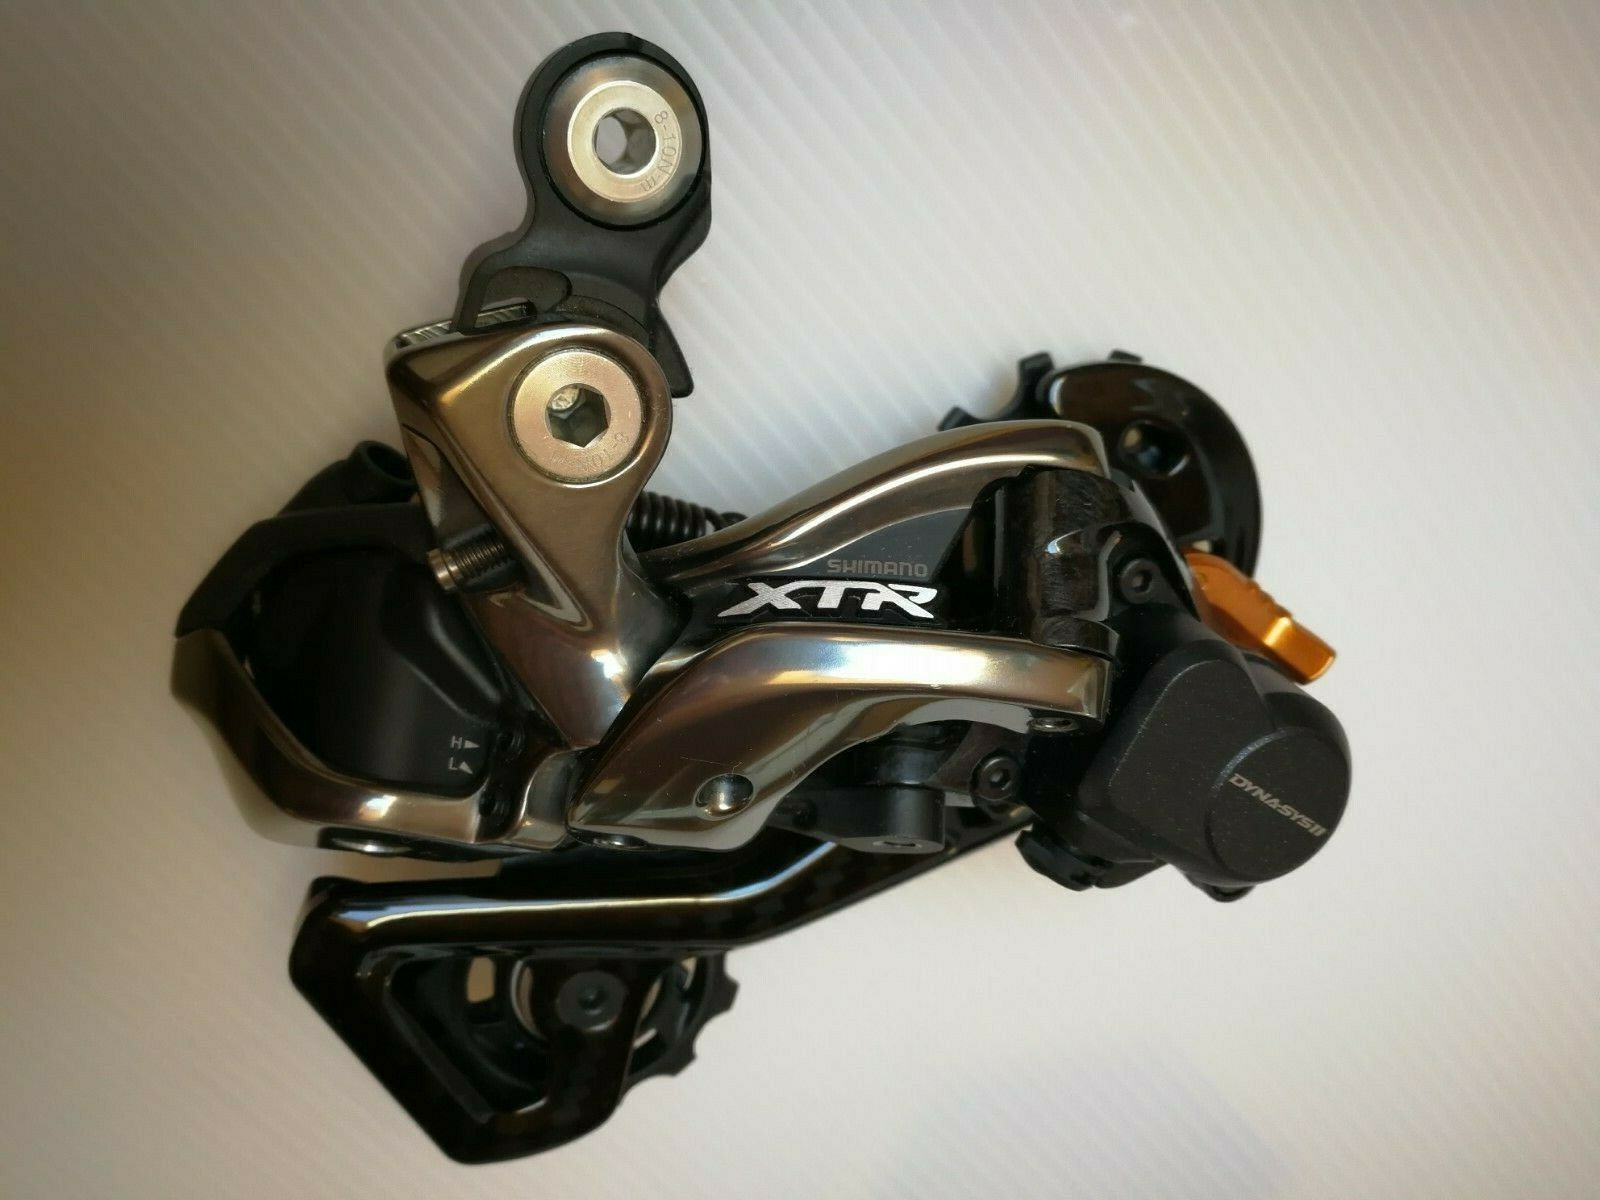 Shimano  XTR Di2 RD-M9050 rear derailleur  manufacturers direct supply